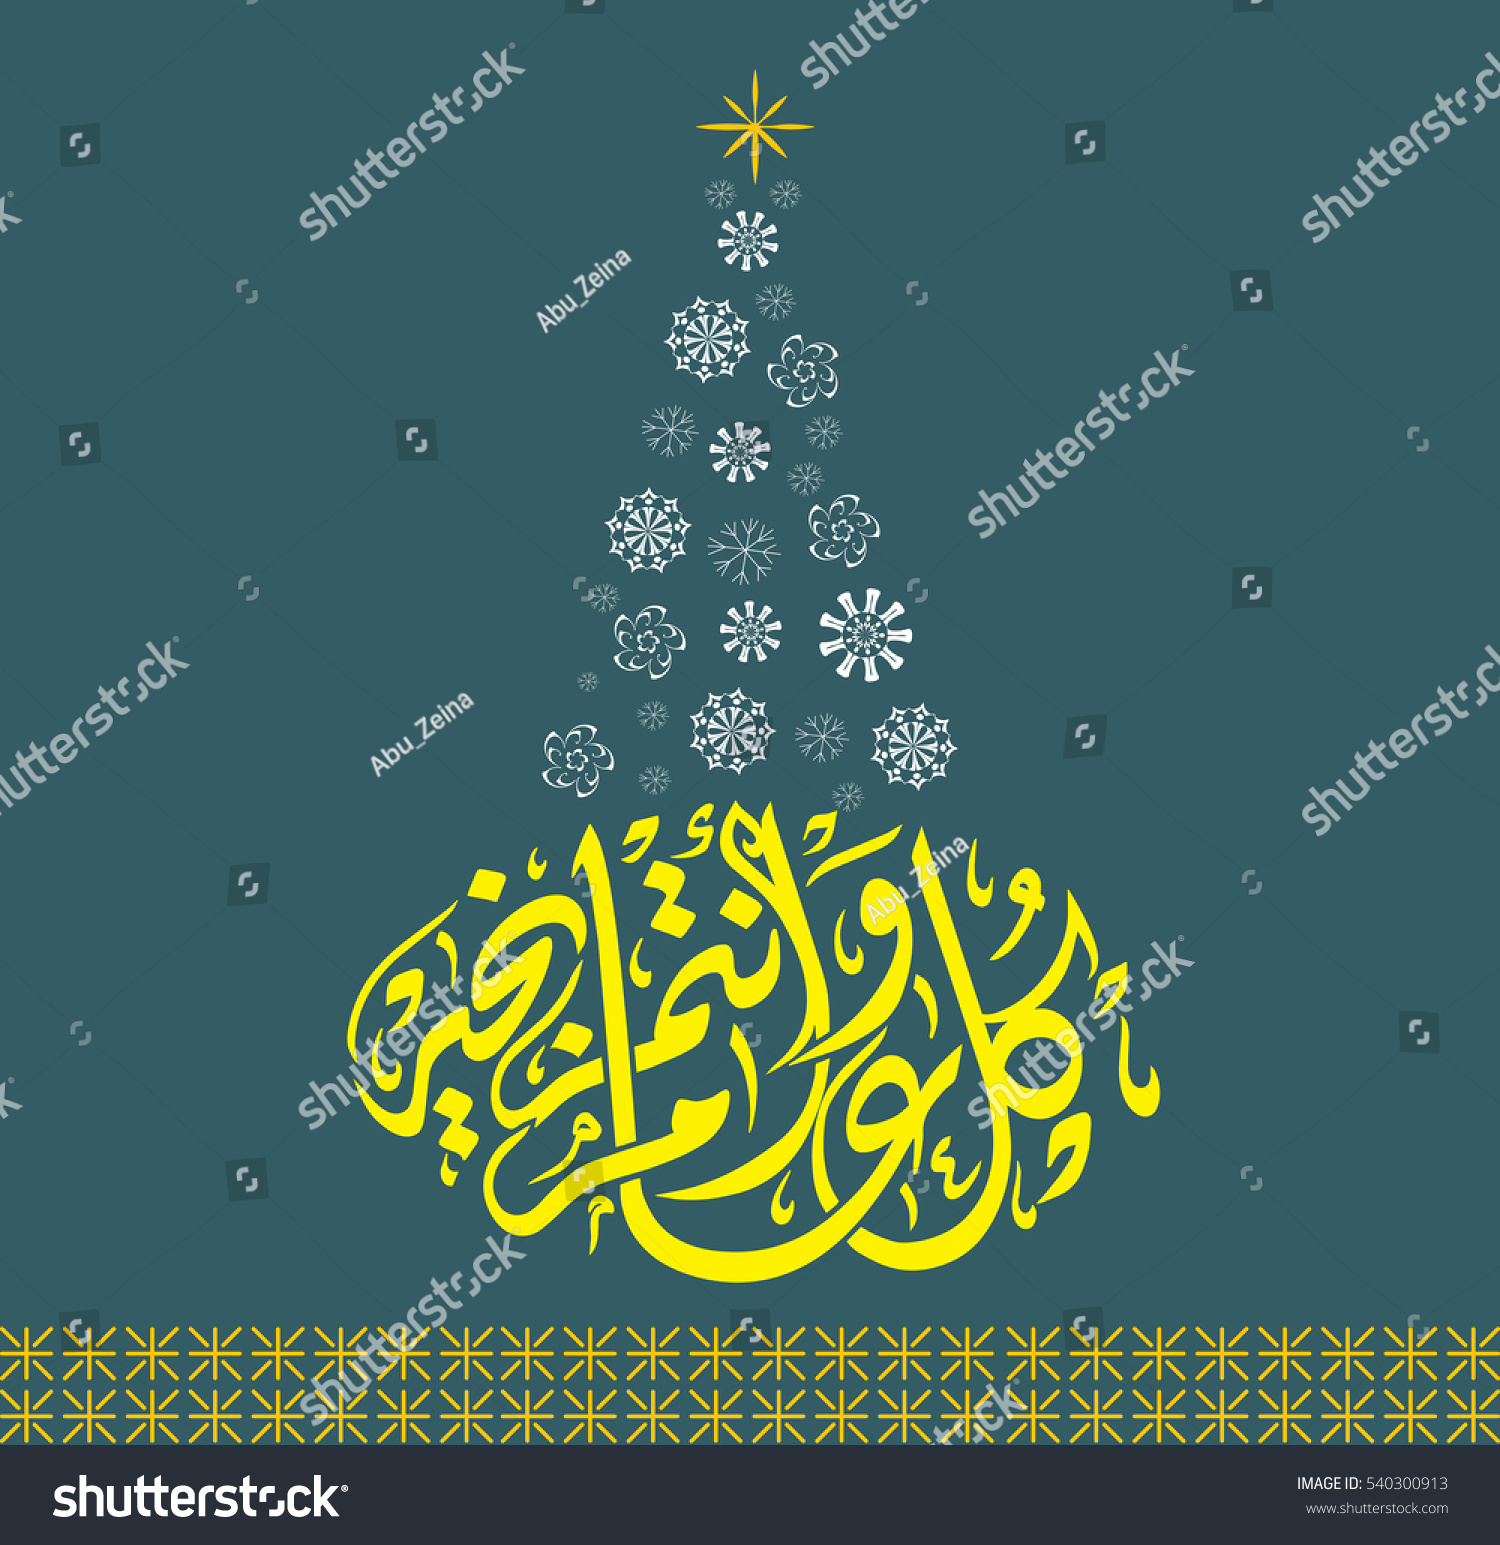 happy new year greeting card in creative arabic calligraphy used in the new years celebrations